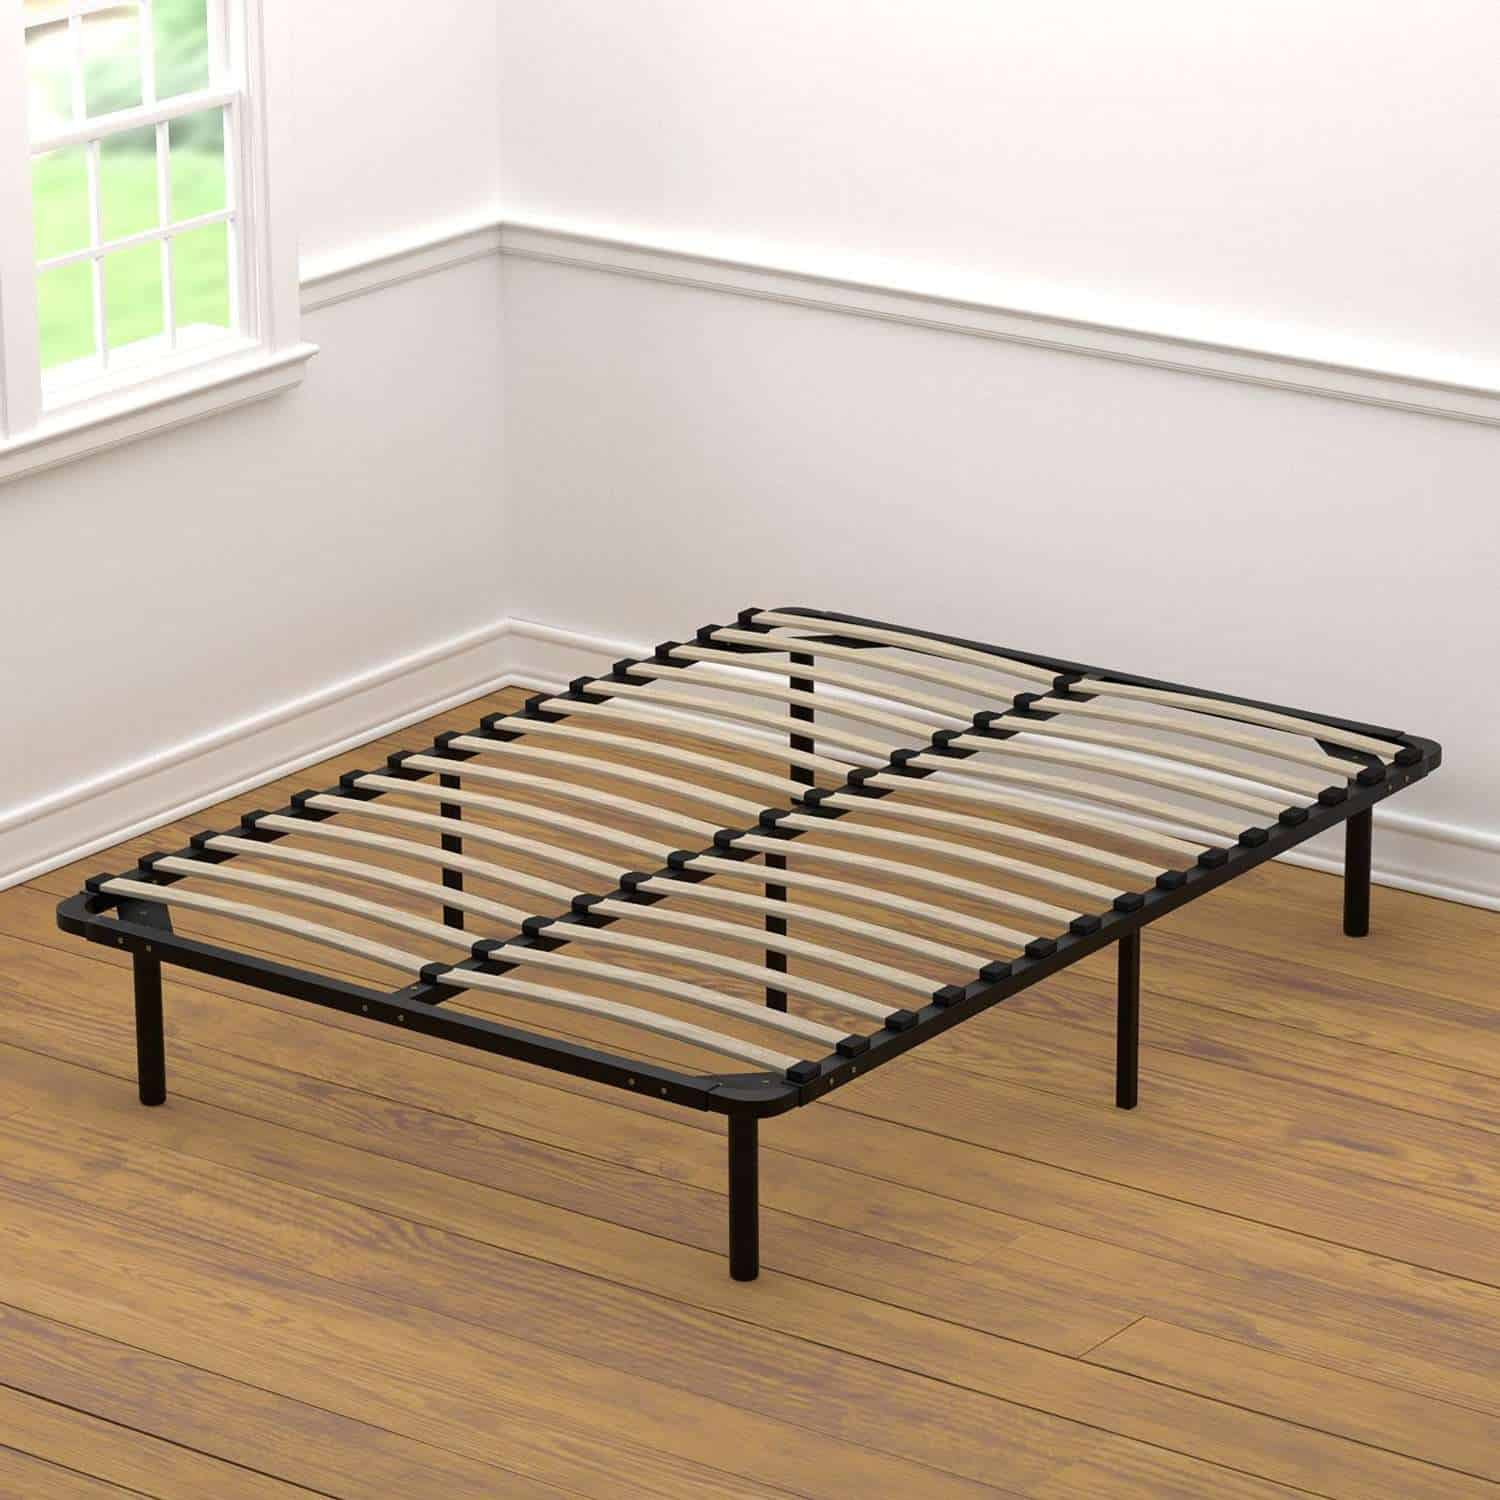 Best bed frame and box spring reviews buying guide bed Full bed frames